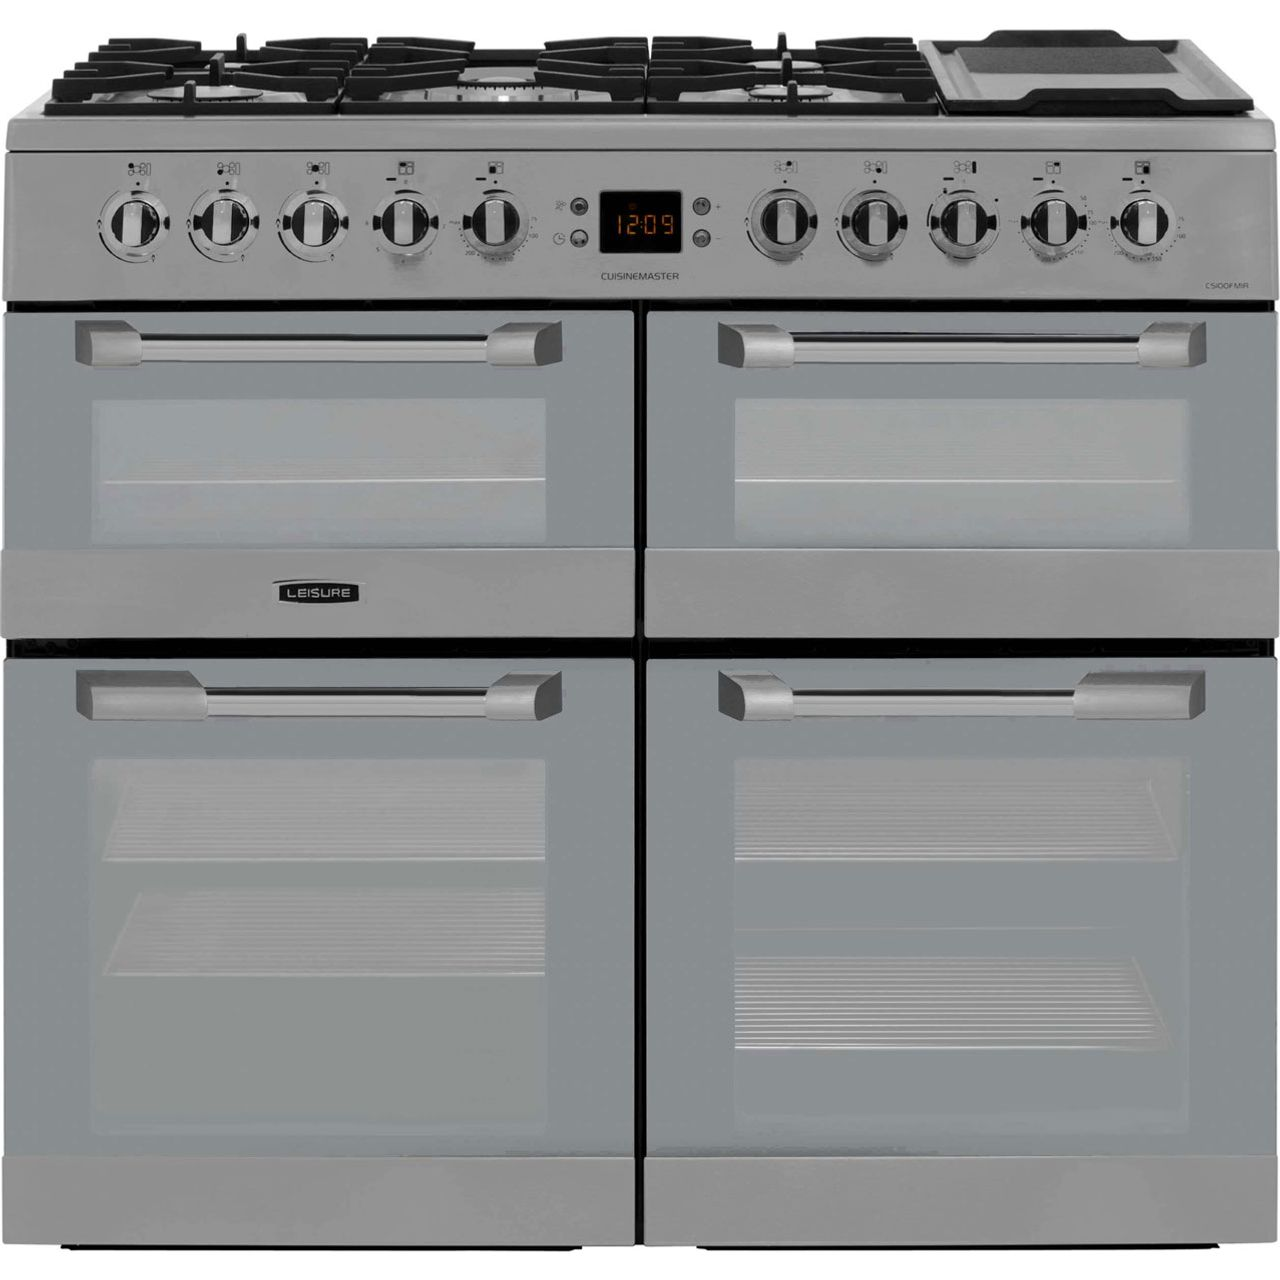 Leisure Cuisinemaster CS100FMIRX 100cm Dual Fuel Range Cooker - Stainless Steel